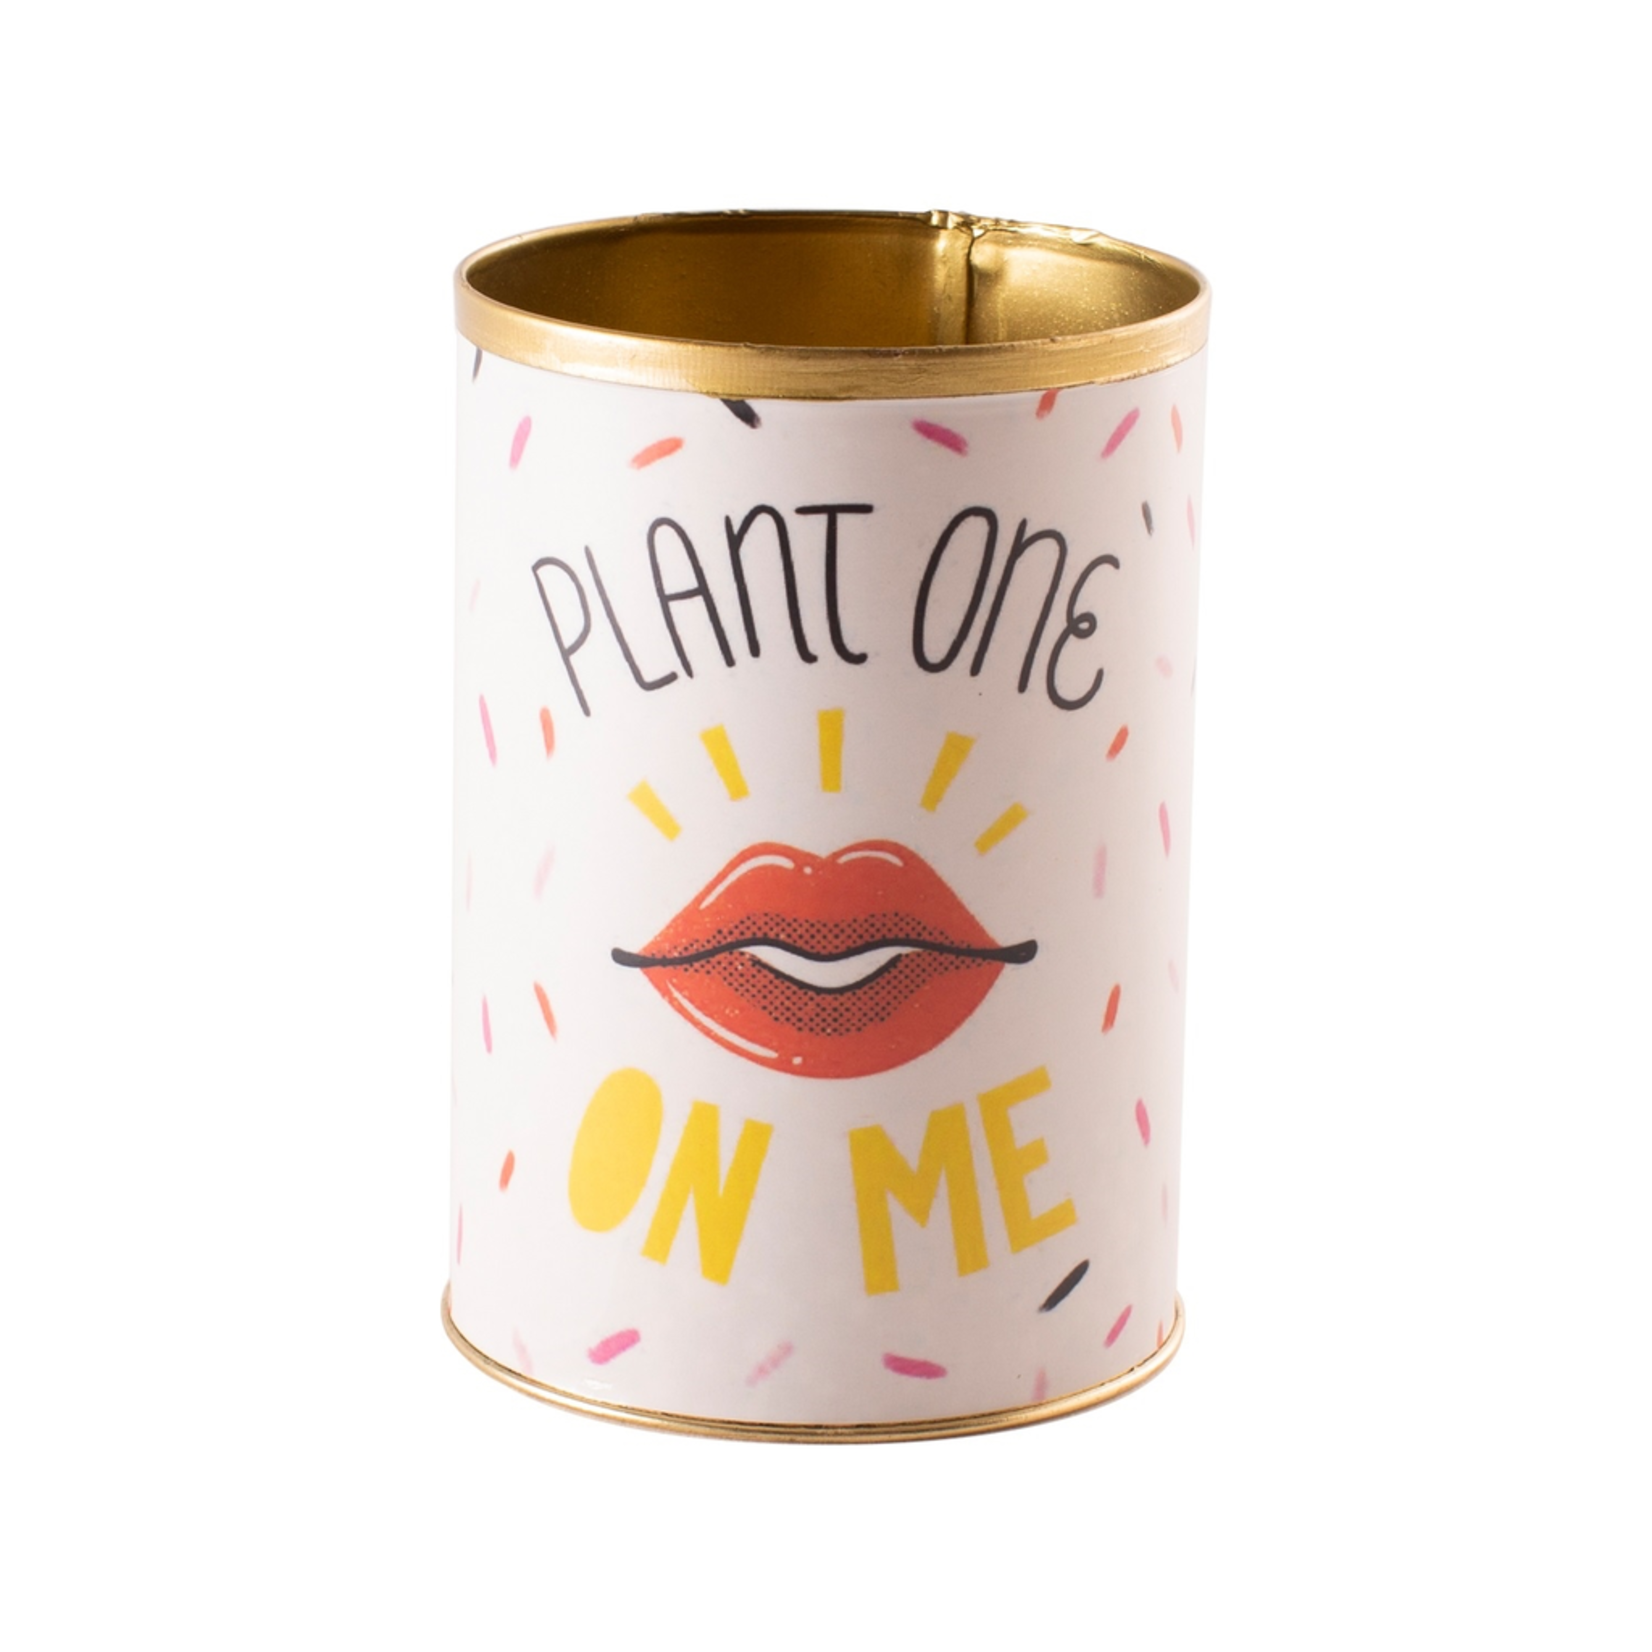 """3.25""""x 4.5""""h Plant One PUNNY CAN (AD)"""